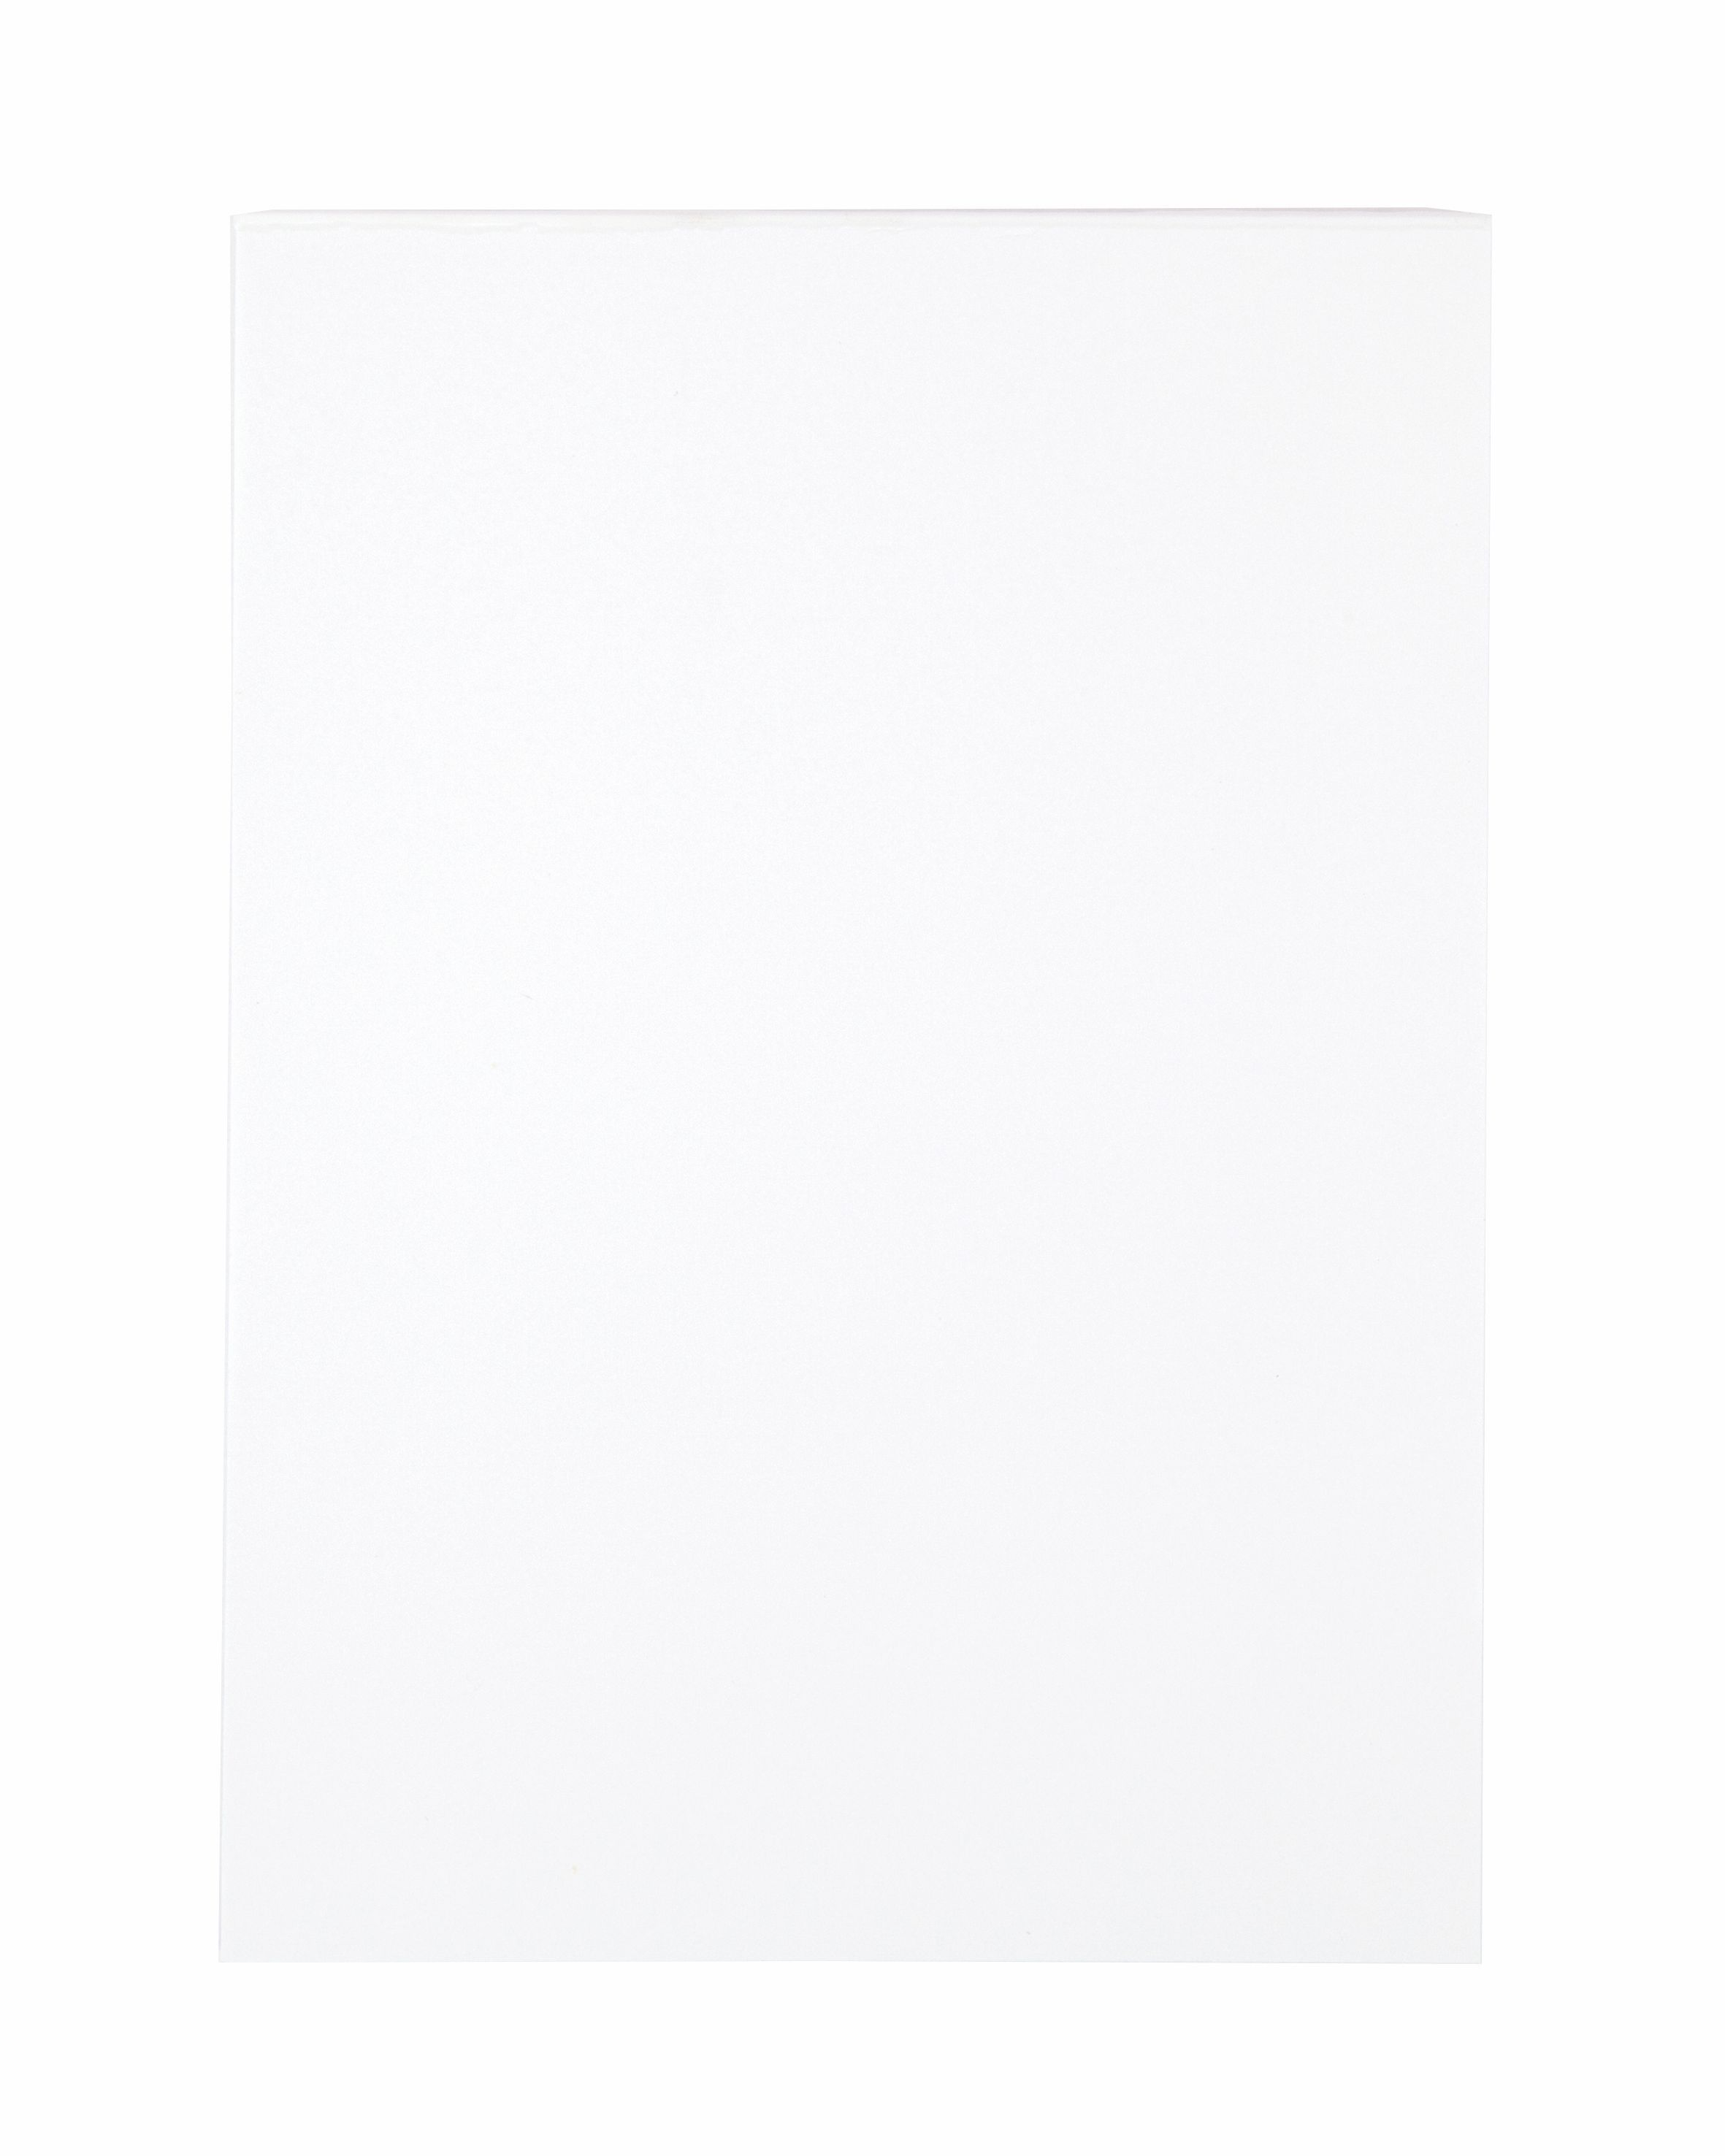 Cambridge Memo Pad Plain 80 Sheets 70gsm 148x105mm A6 Ref 100080233 [Pack 10]